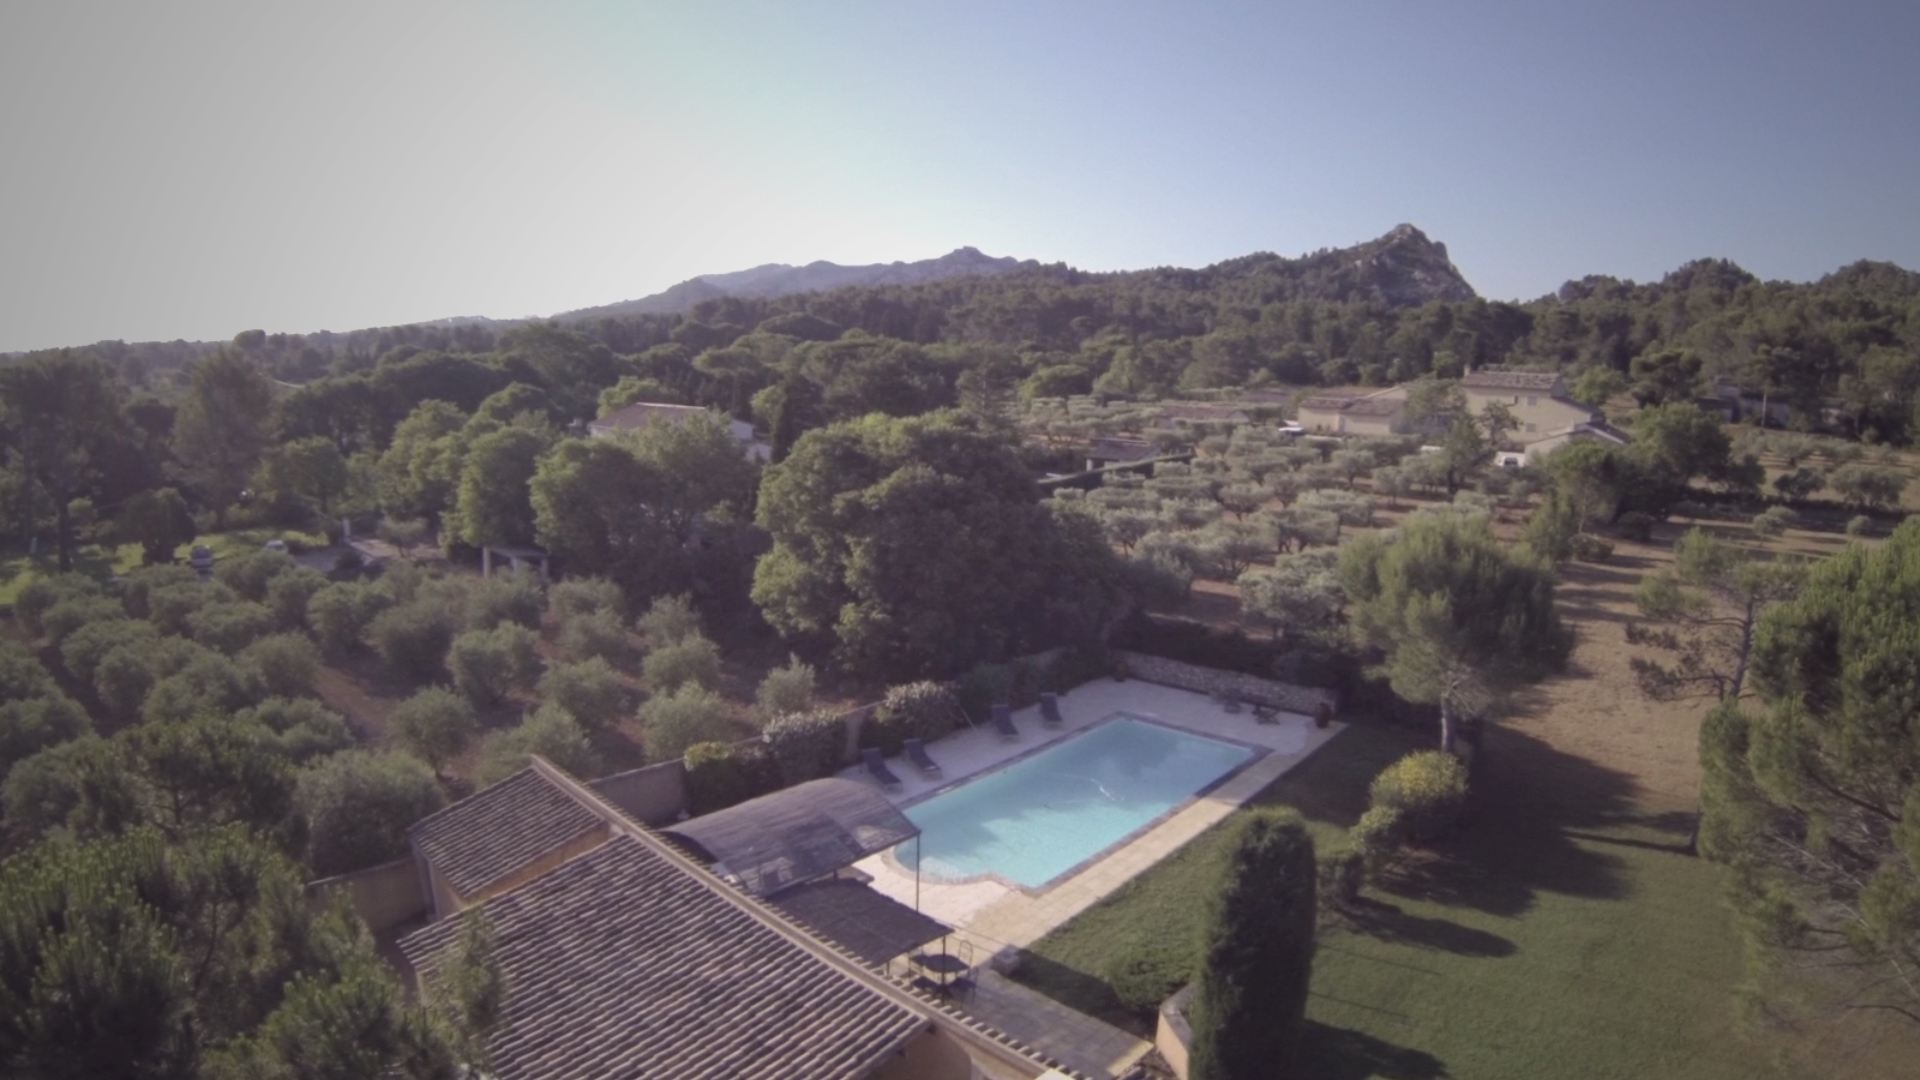 Property For Sale at Property located 5 minutes from the center of Saint Remy de Provence